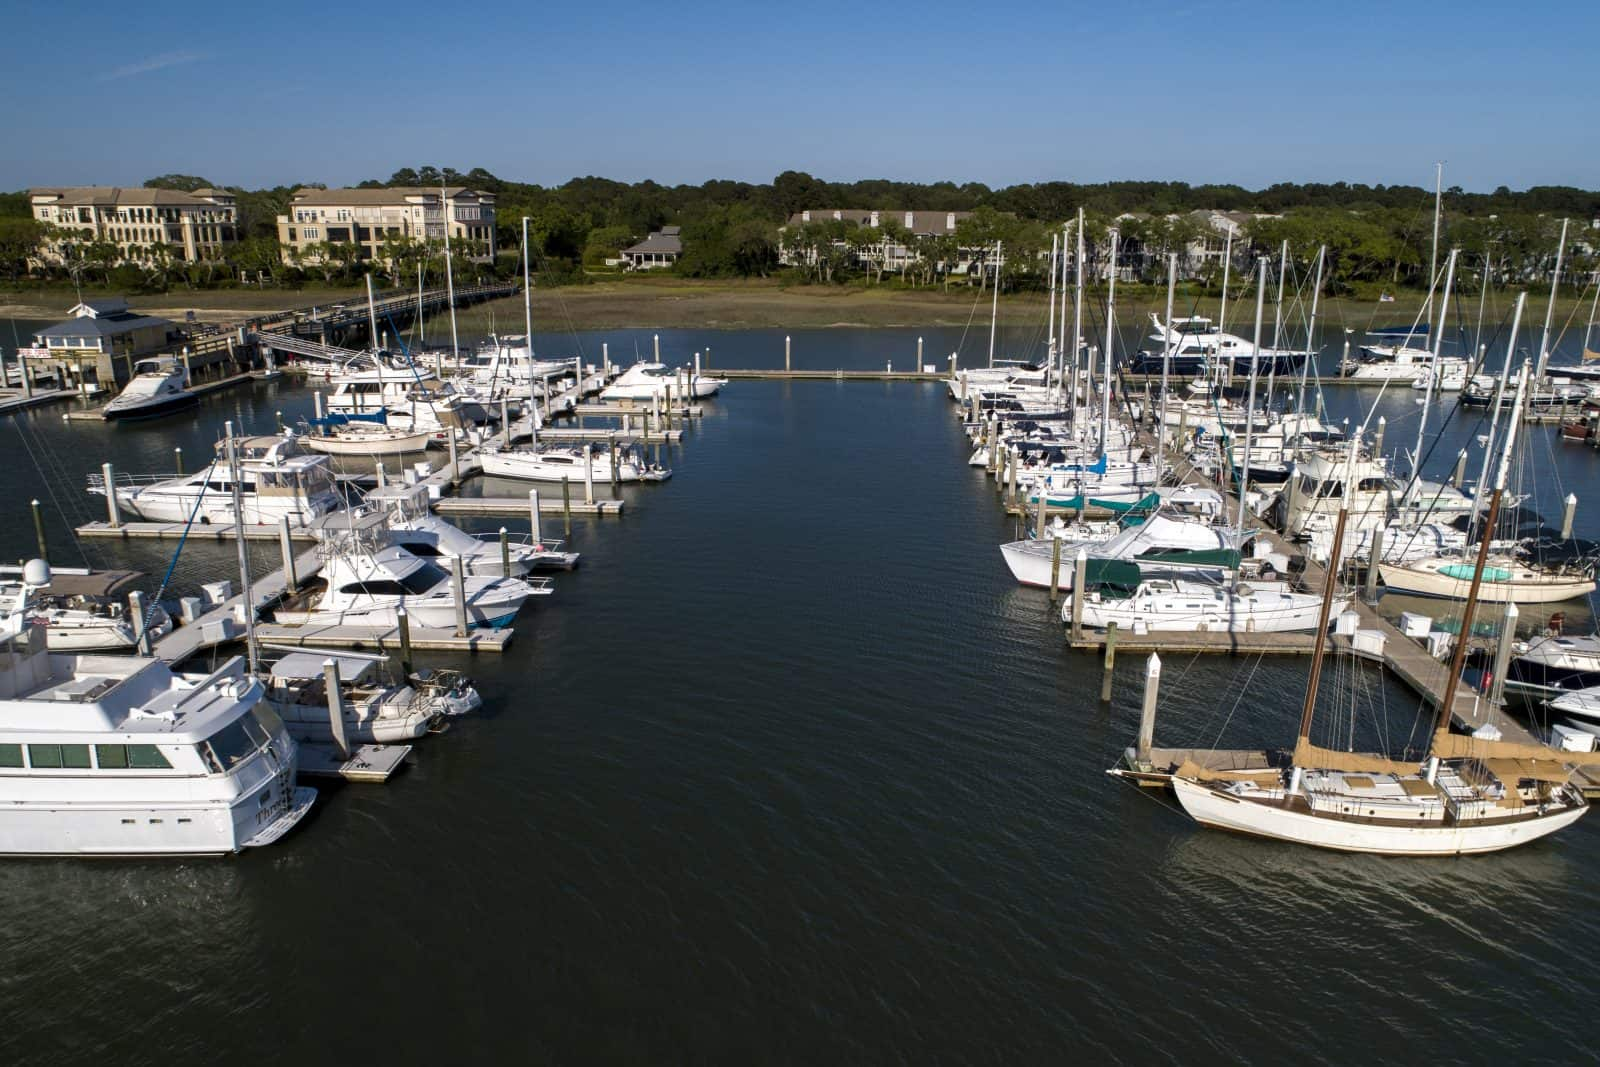 Skull Creek Marina Aerial Photo